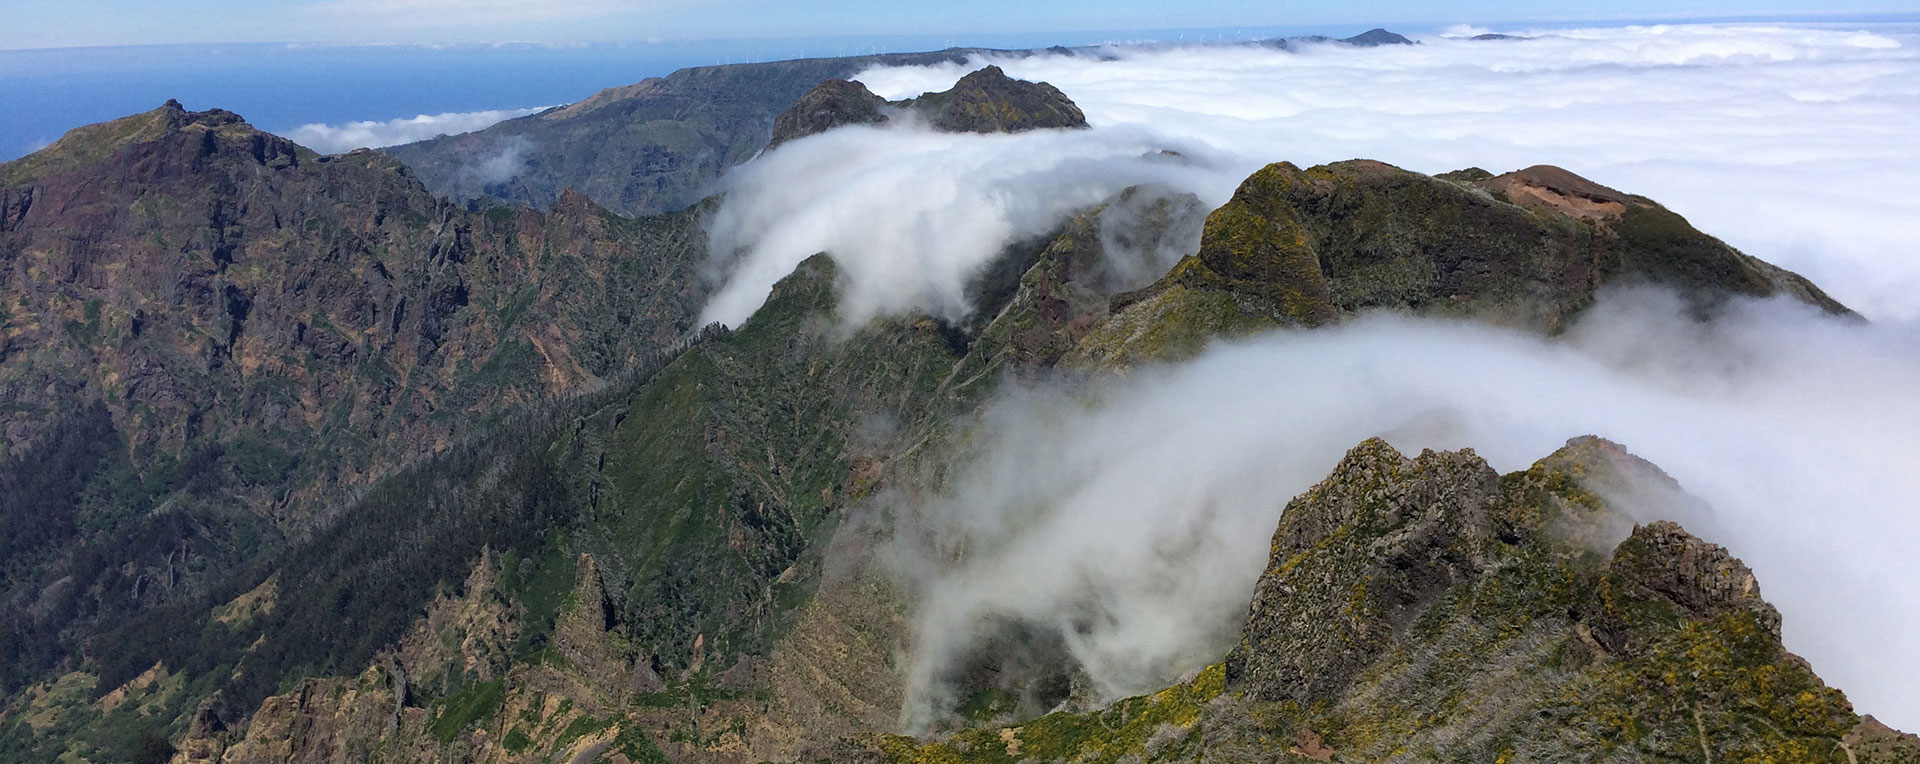 Madeira: Multi-Activity Adventure